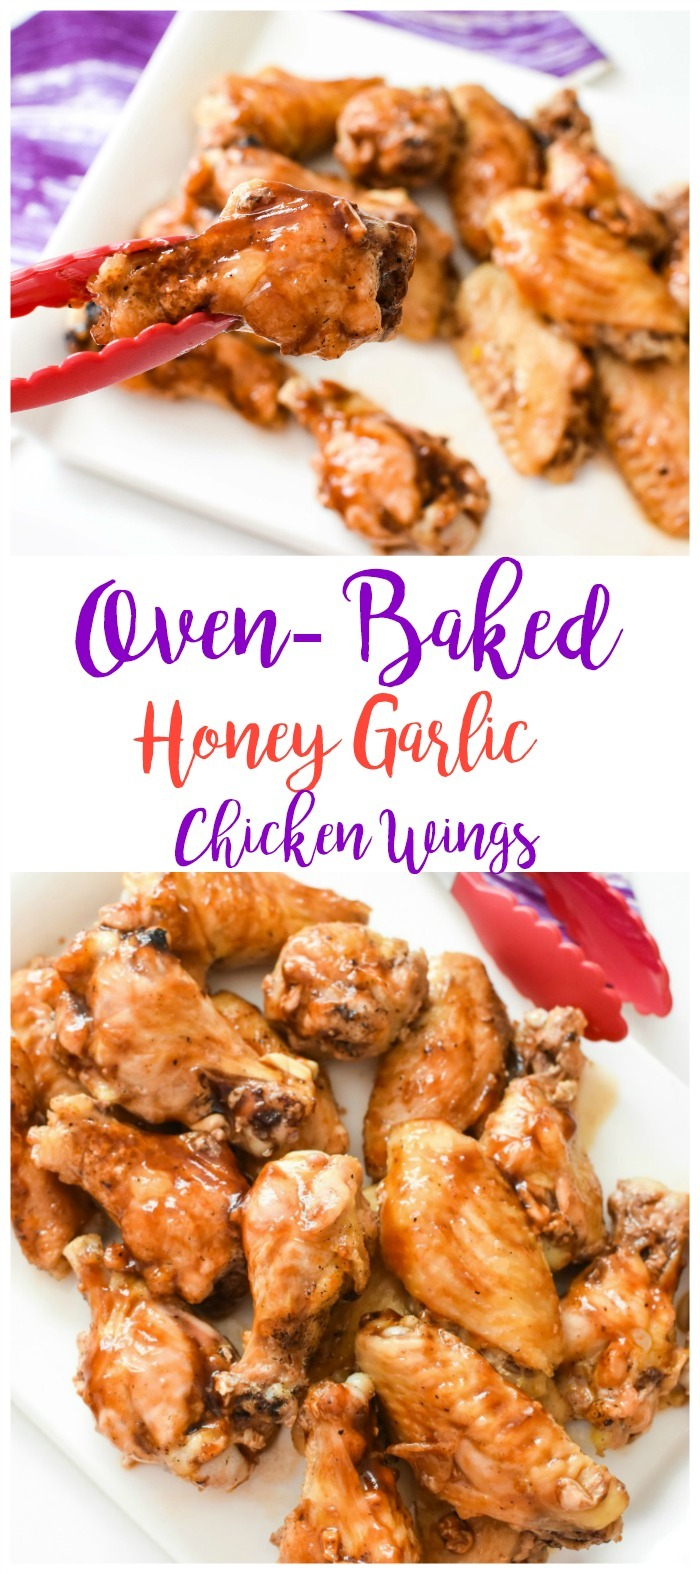 Oven Baked Honey Garlic and Ginger Chicken Wings